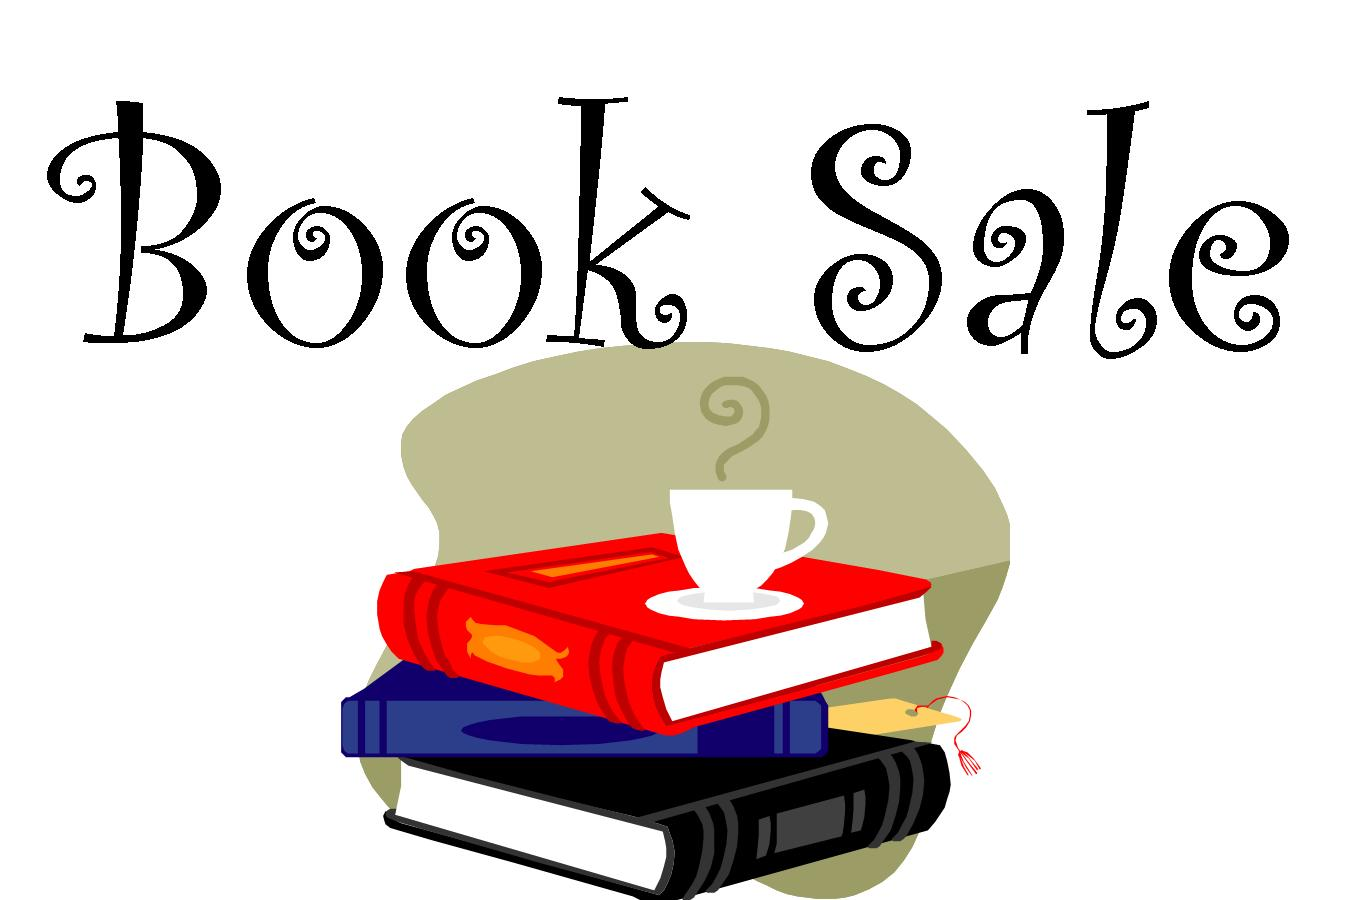 Book Fair Clipart - Cliparts.co